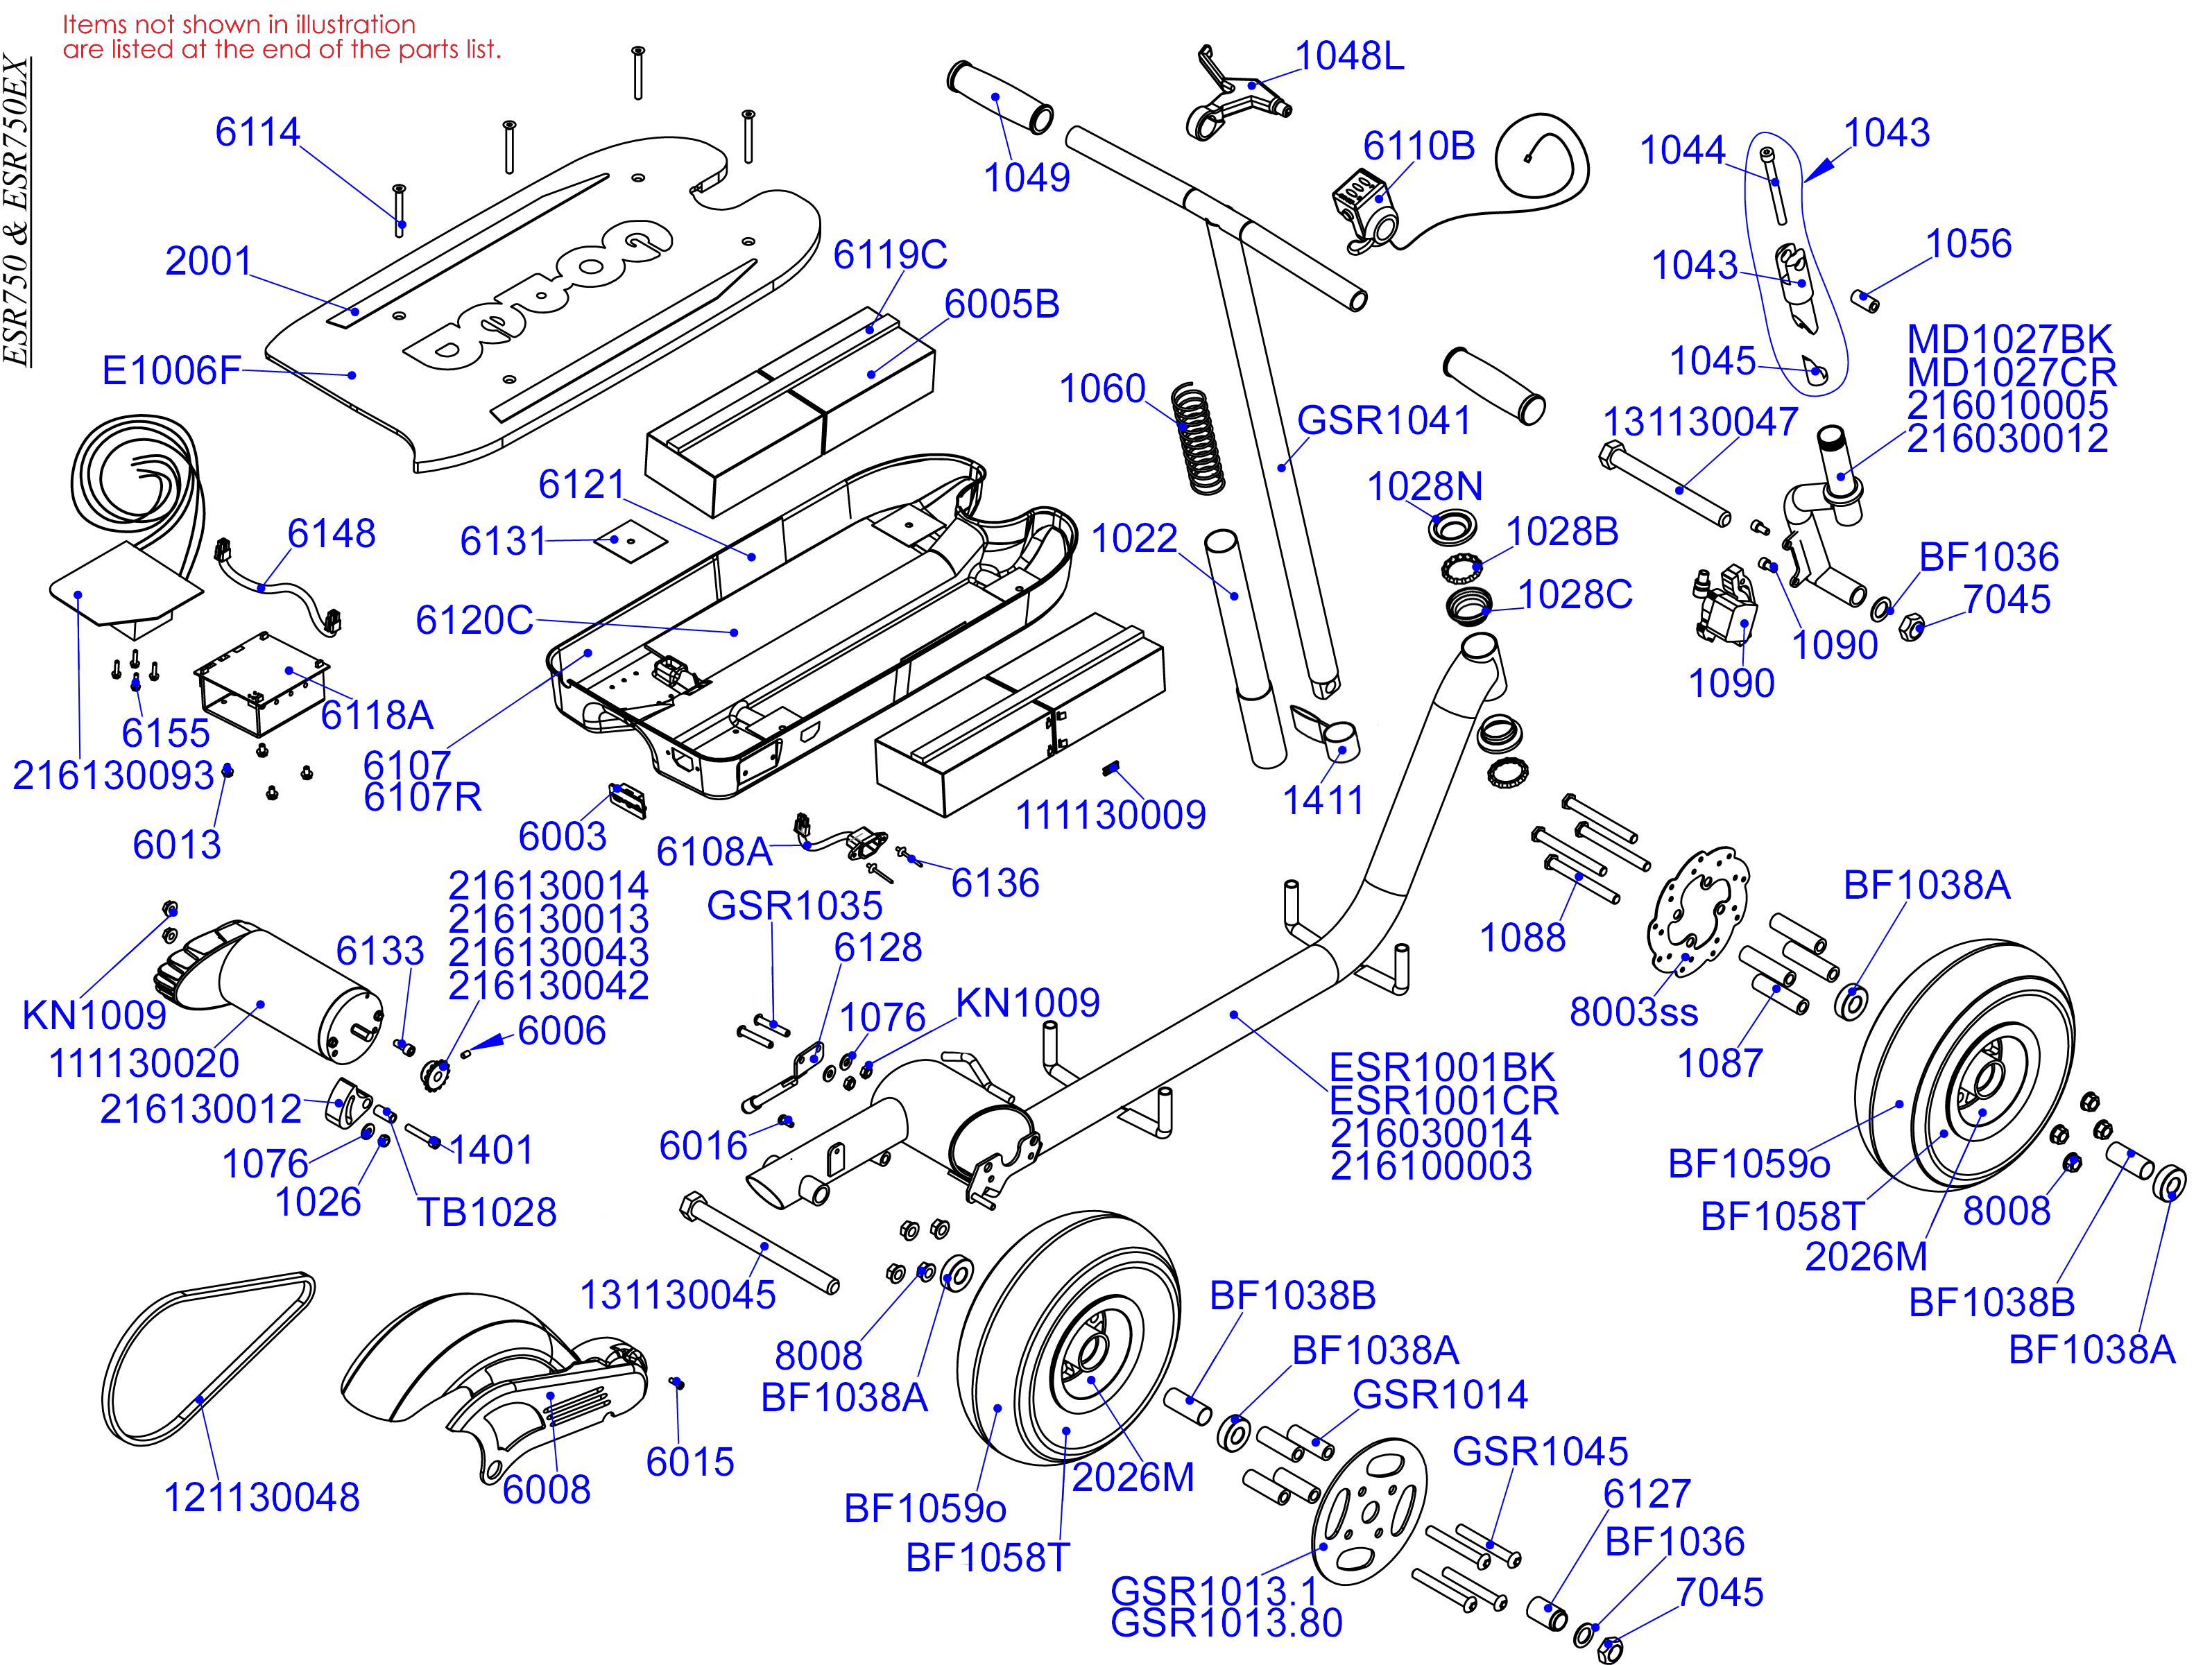 newesr750?t=1433273469 parts electric scooter parts esr 750 www goped com  Goped Bigfoot